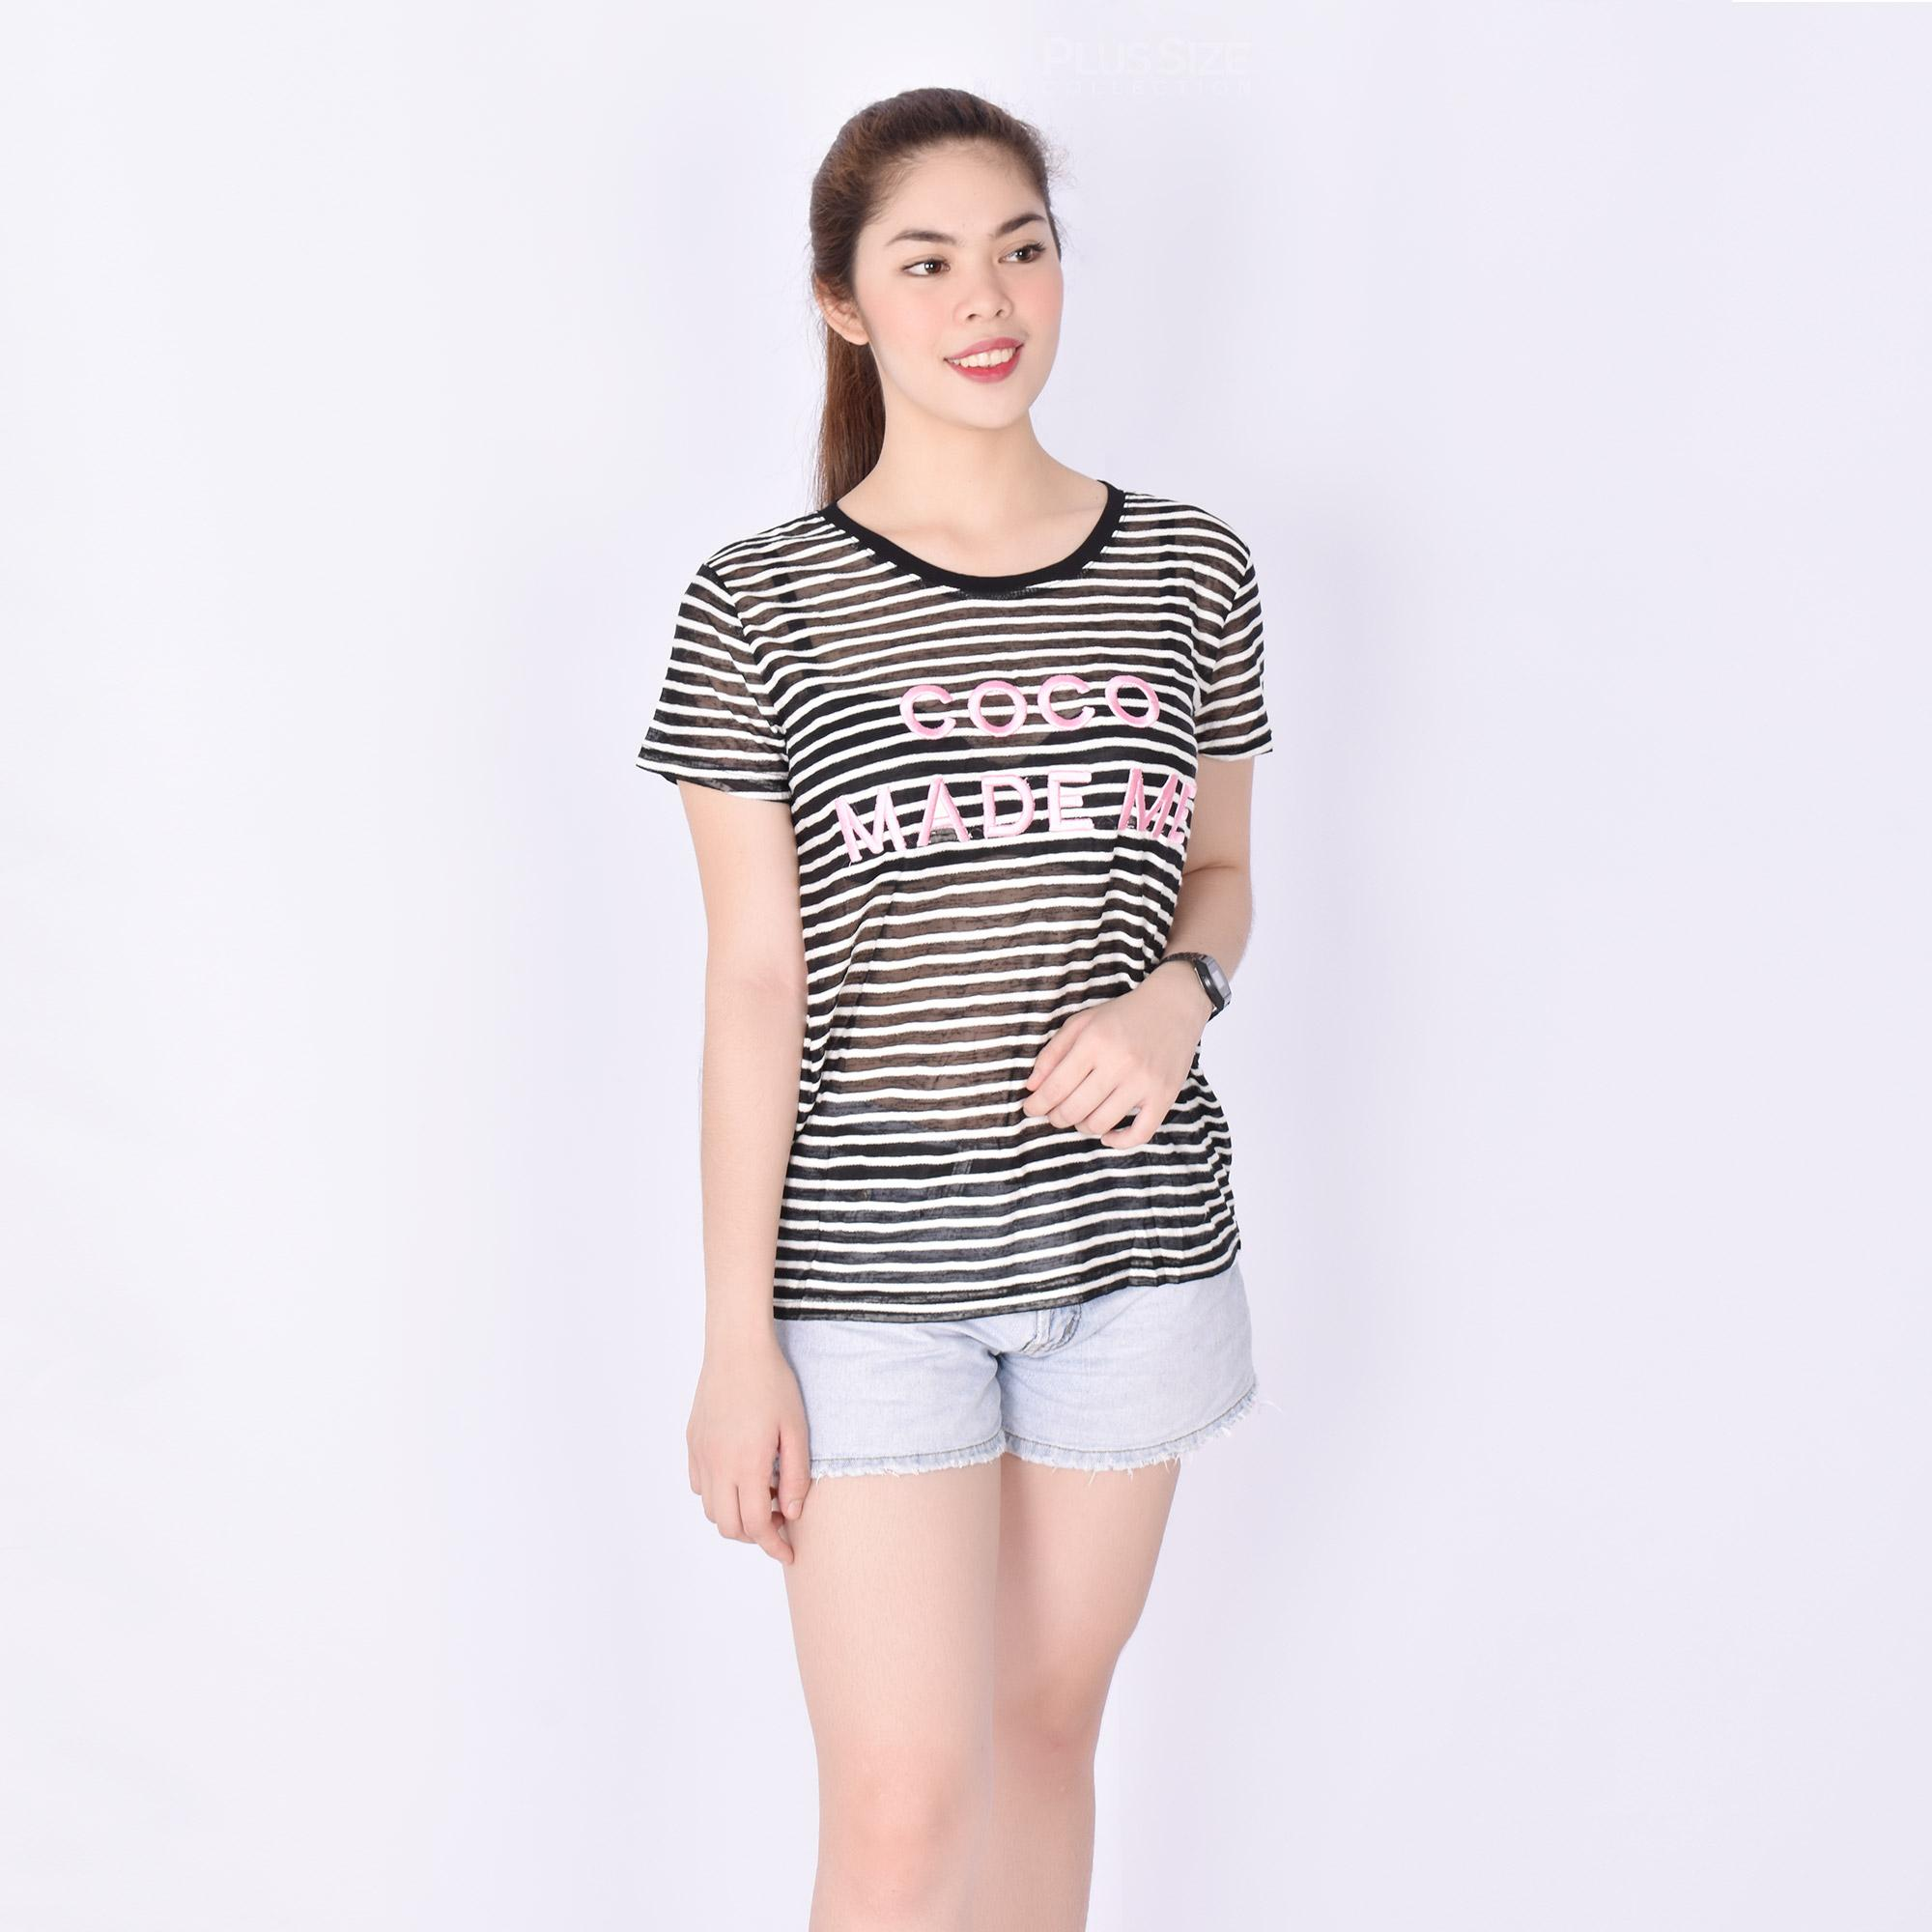 82963febecd COCO MADE ME Embroidered Pattern Tops Semi See Through Short Sleeve Top Tee  New Trendy Fashionable